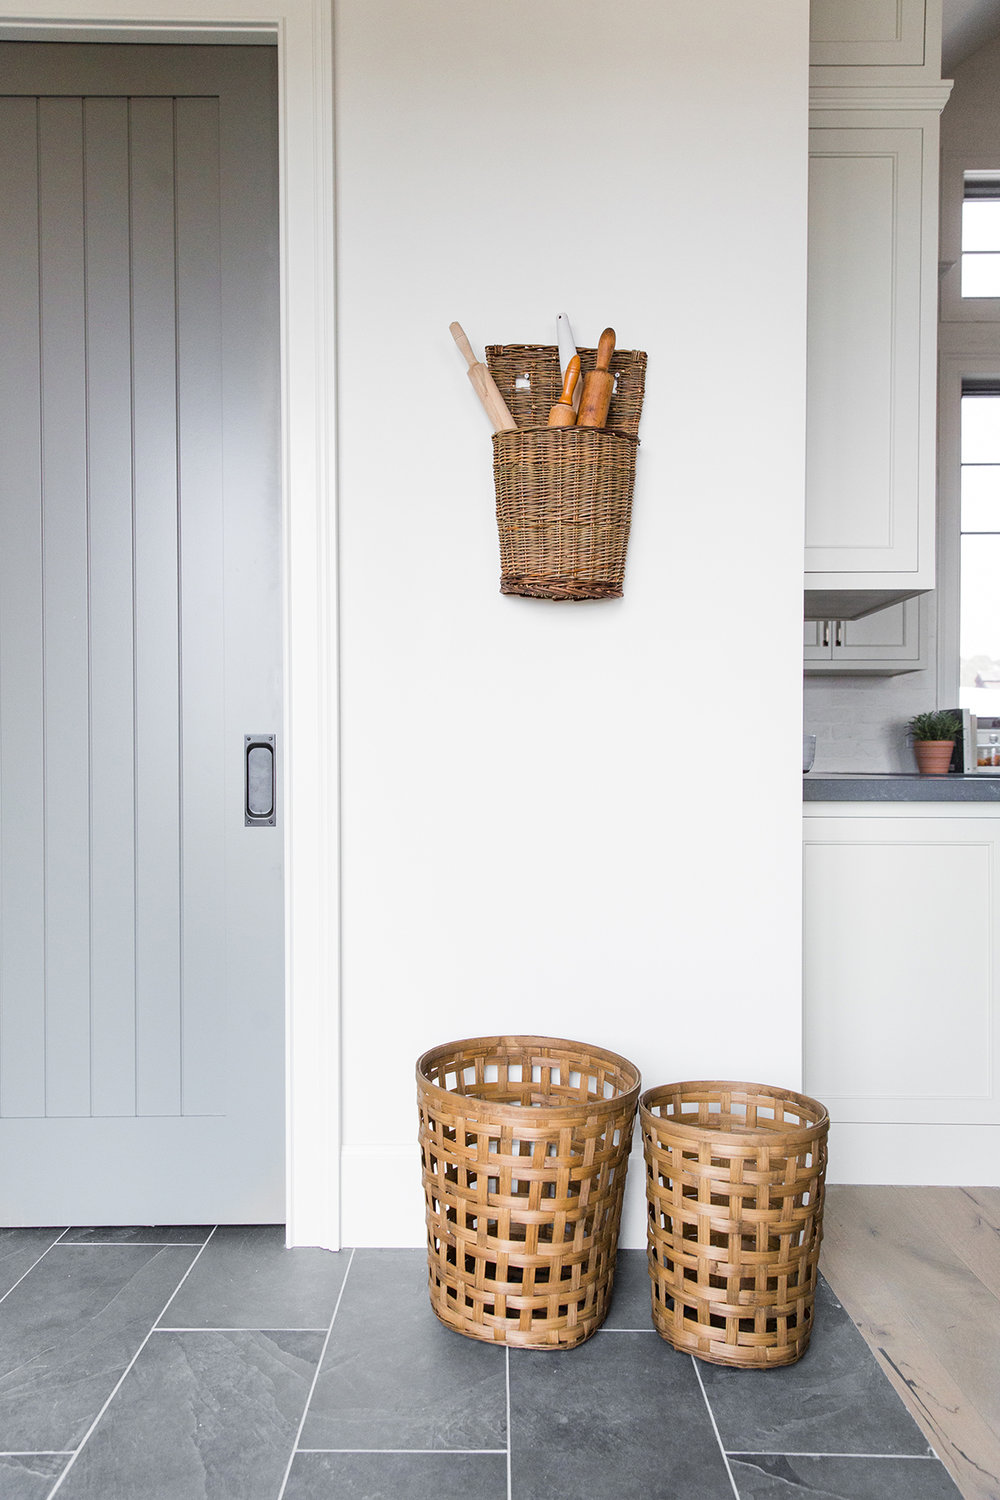 Hanging basket with rolling pins in corner of kitchen - Studio McGee Design